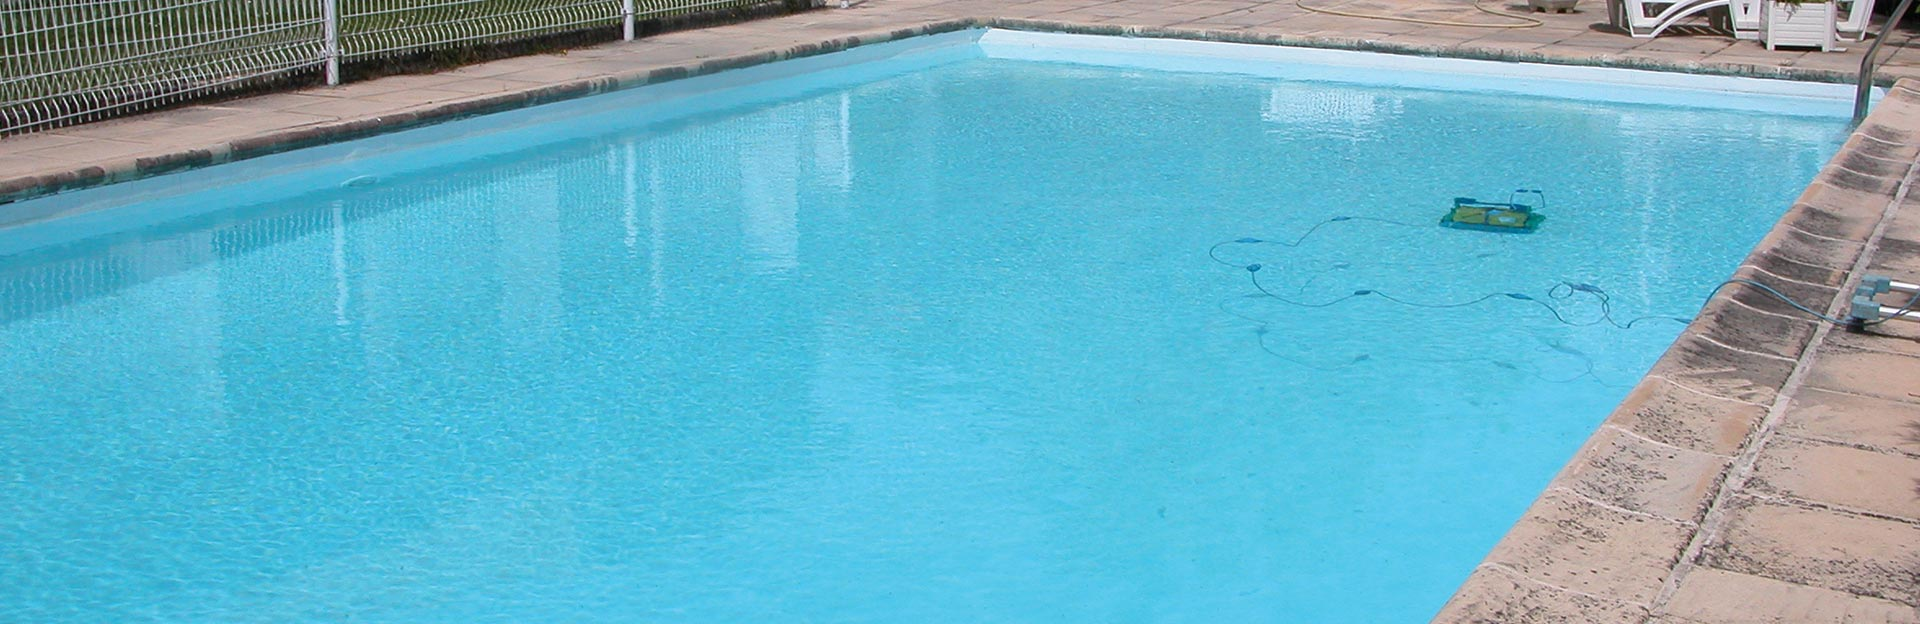 R nol composites piscines polyester coques toulouse for Piscine coque polyester albi